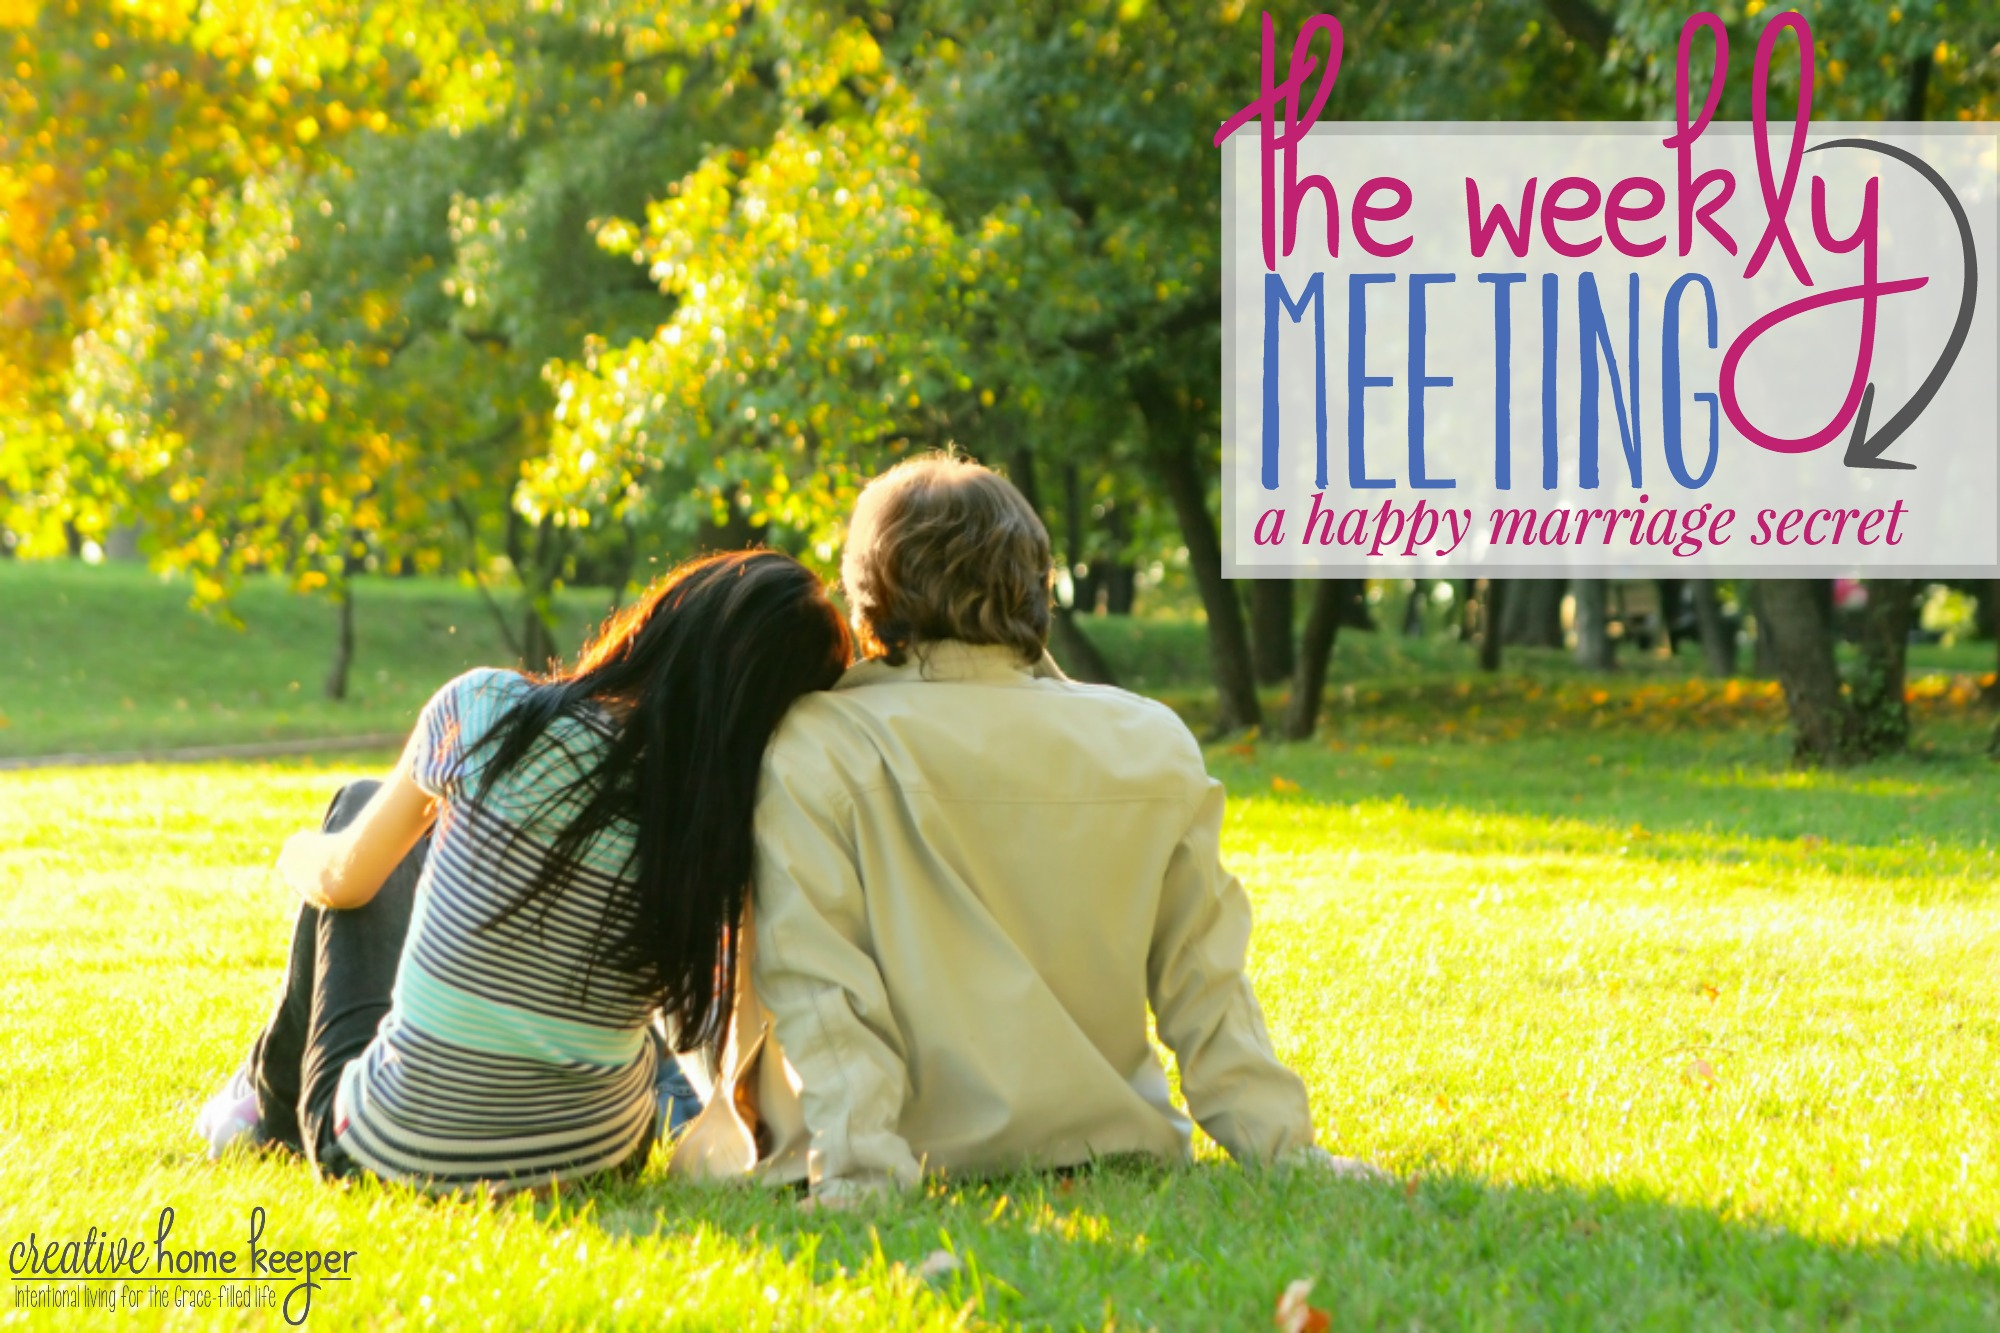 The Weekly Meeting with Your Spouse {a happy marriage secret